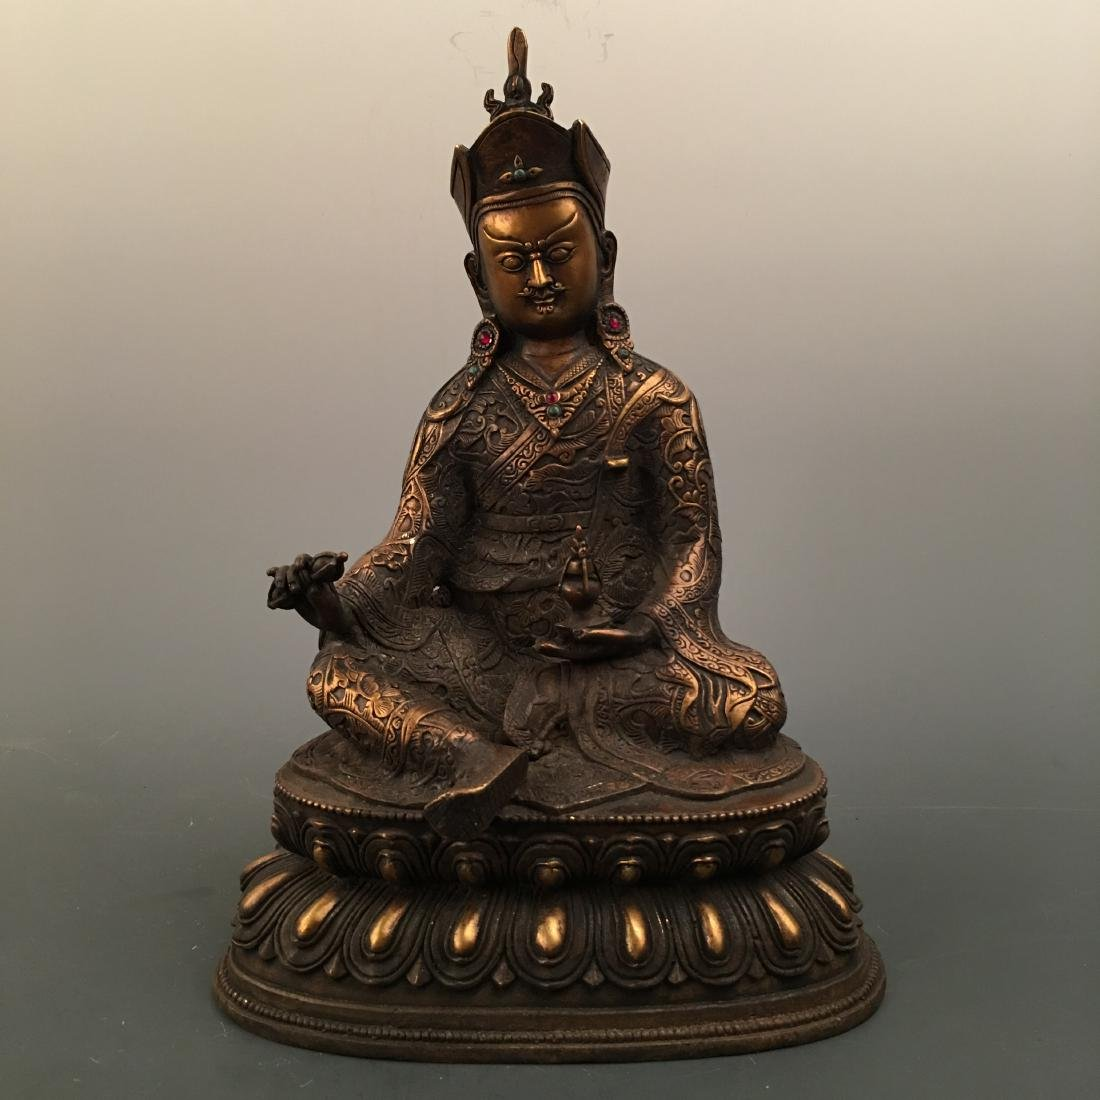 Chinese Bronze Buddha Figure Inlaid Gemstones